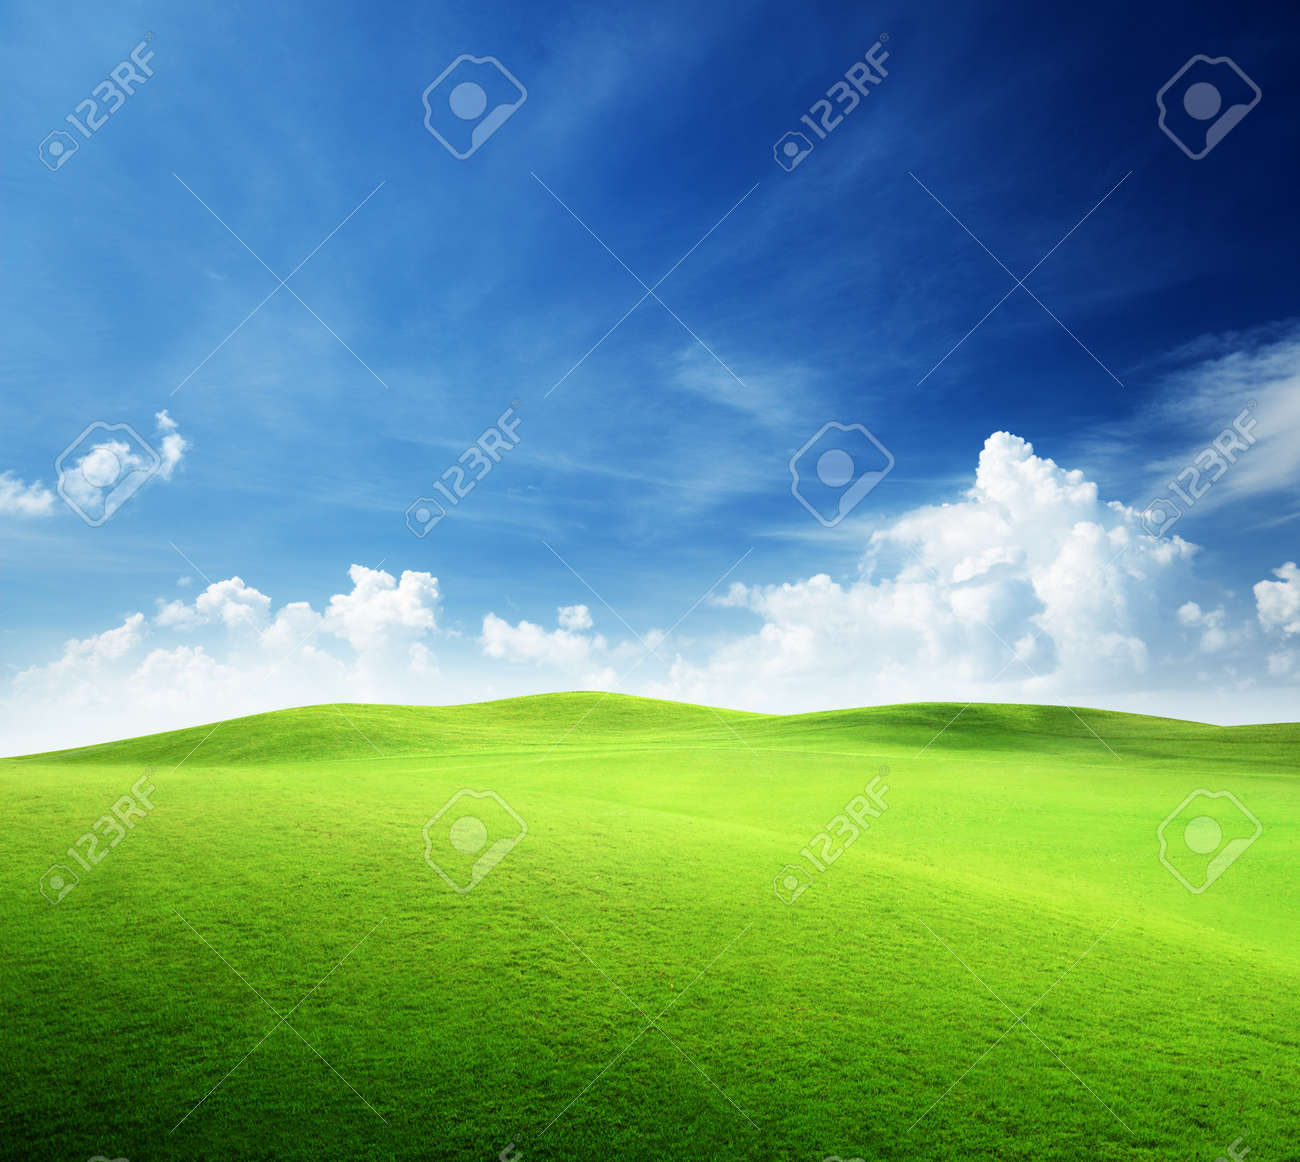 Field And Sky Photography Sky Field of Grass And